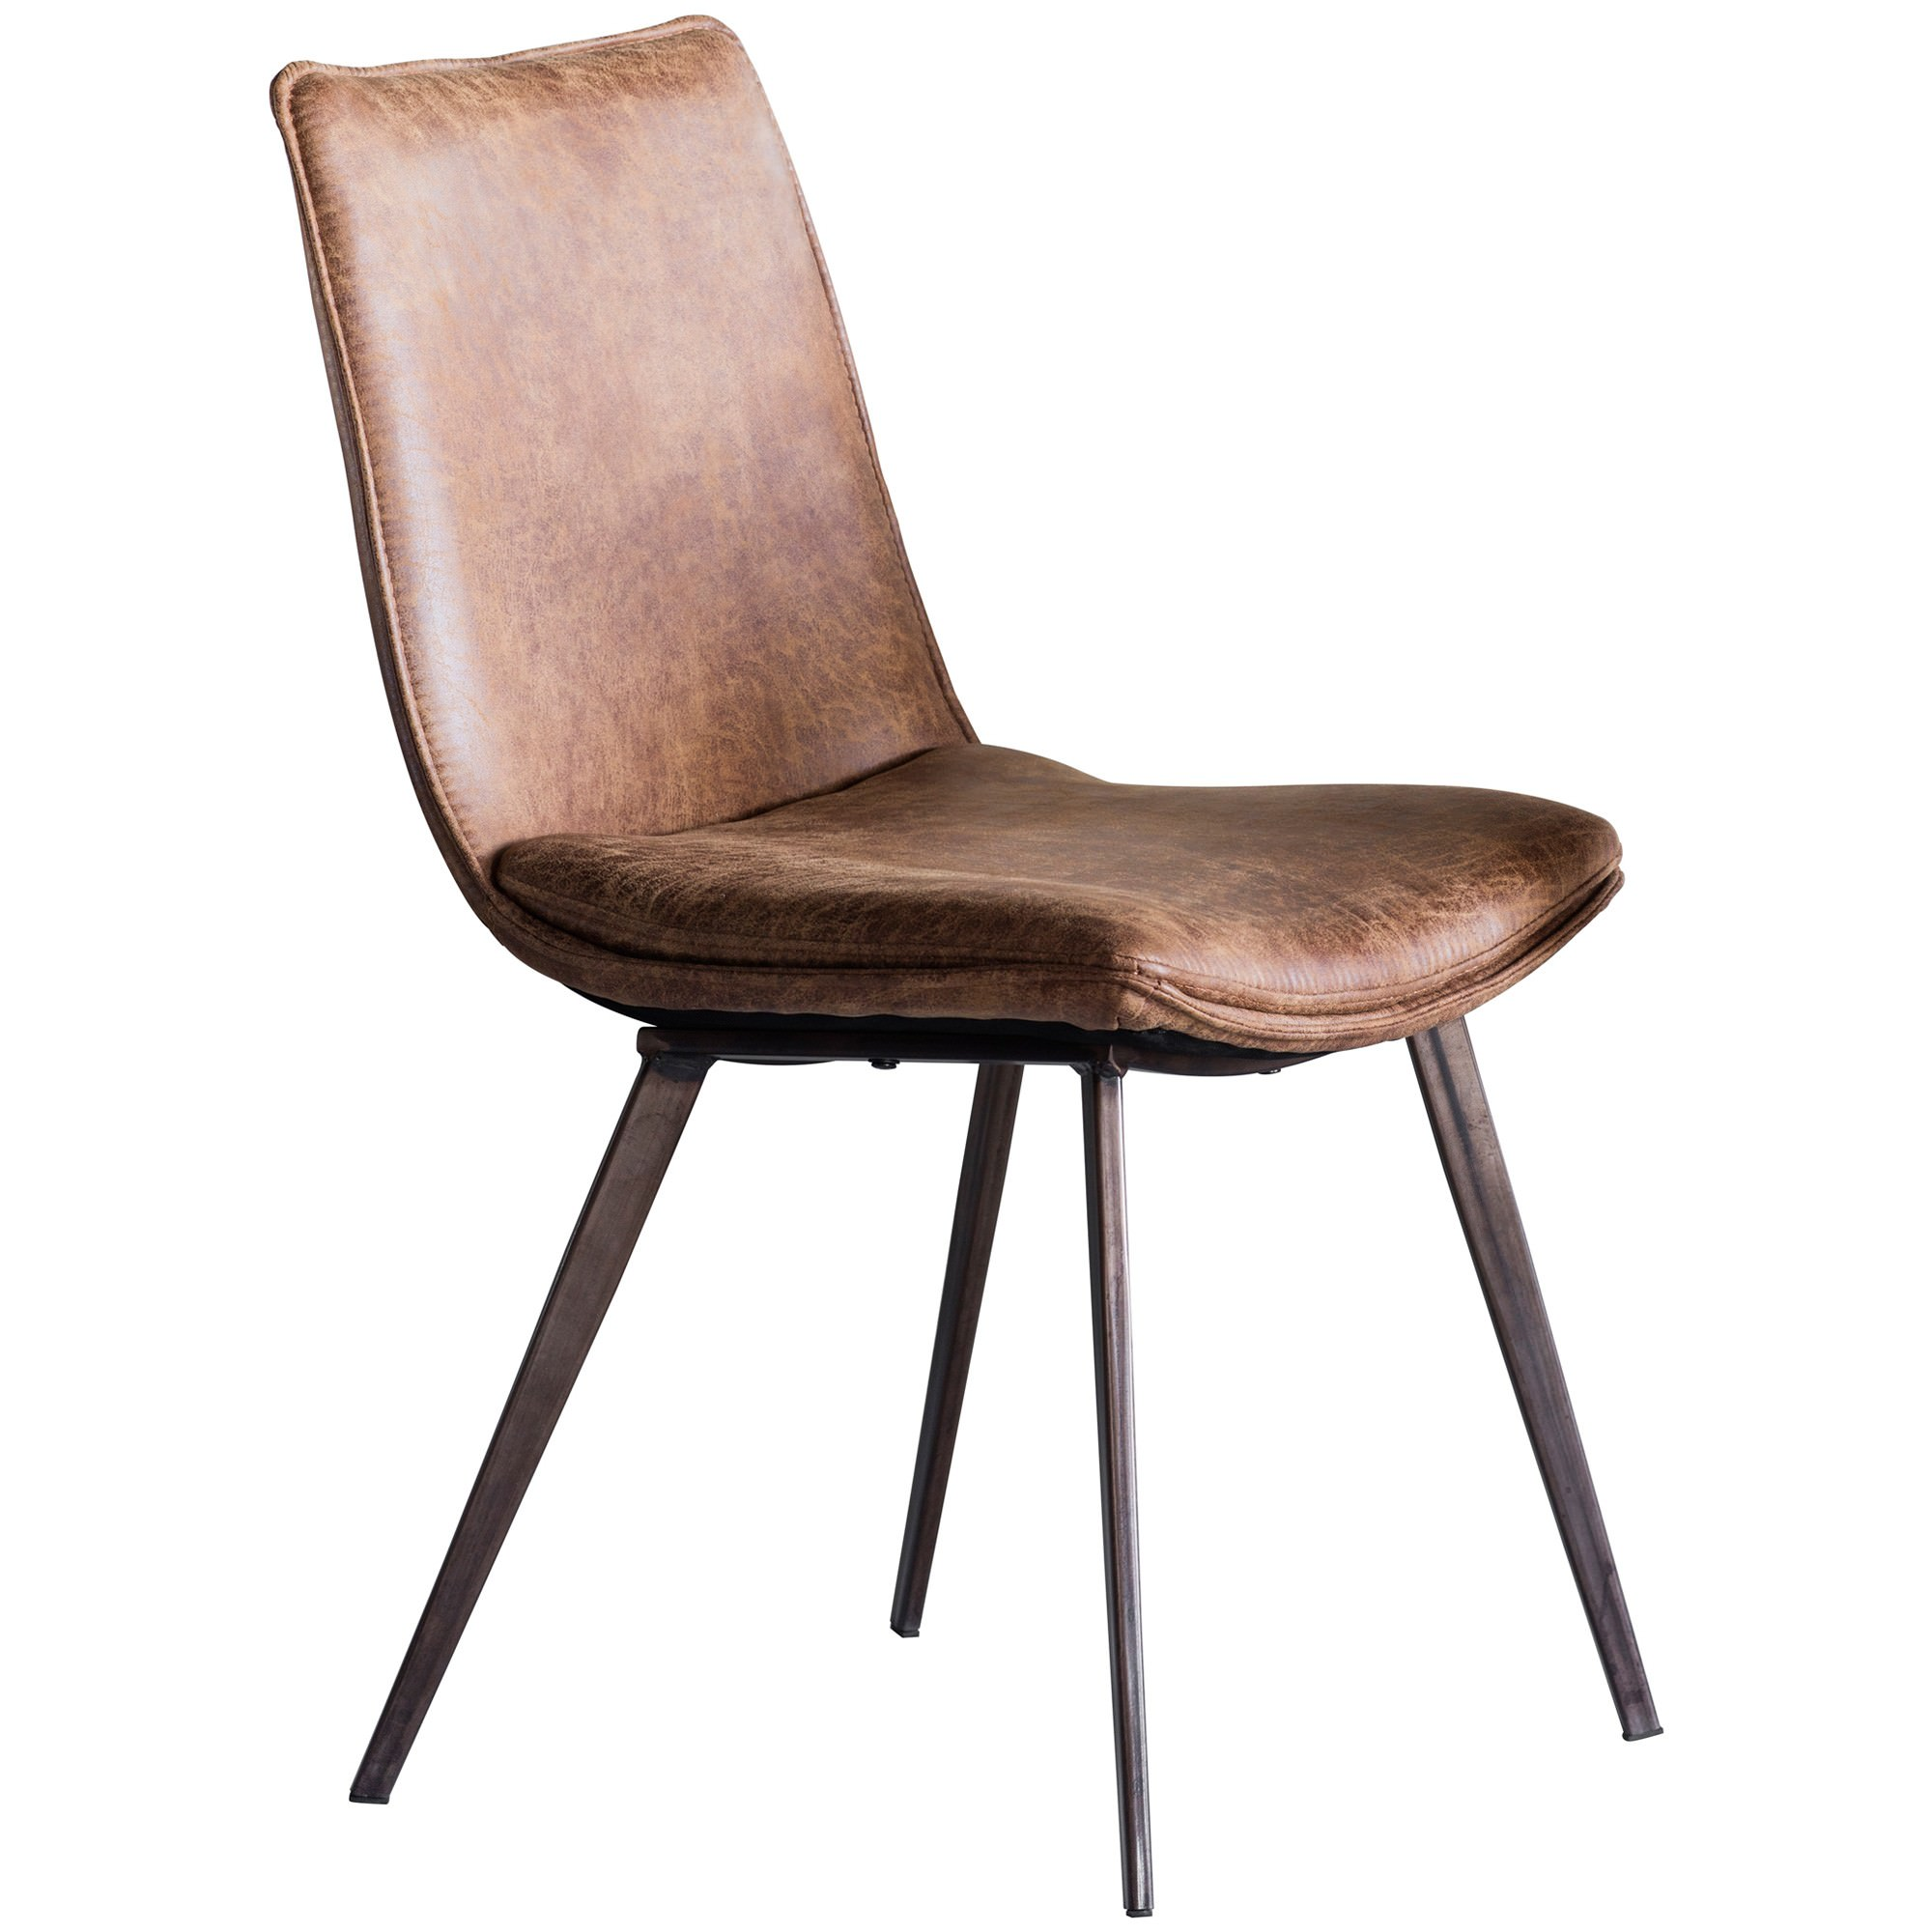 Henrik Faux Leather Dining Chair, Set of 2, Tan